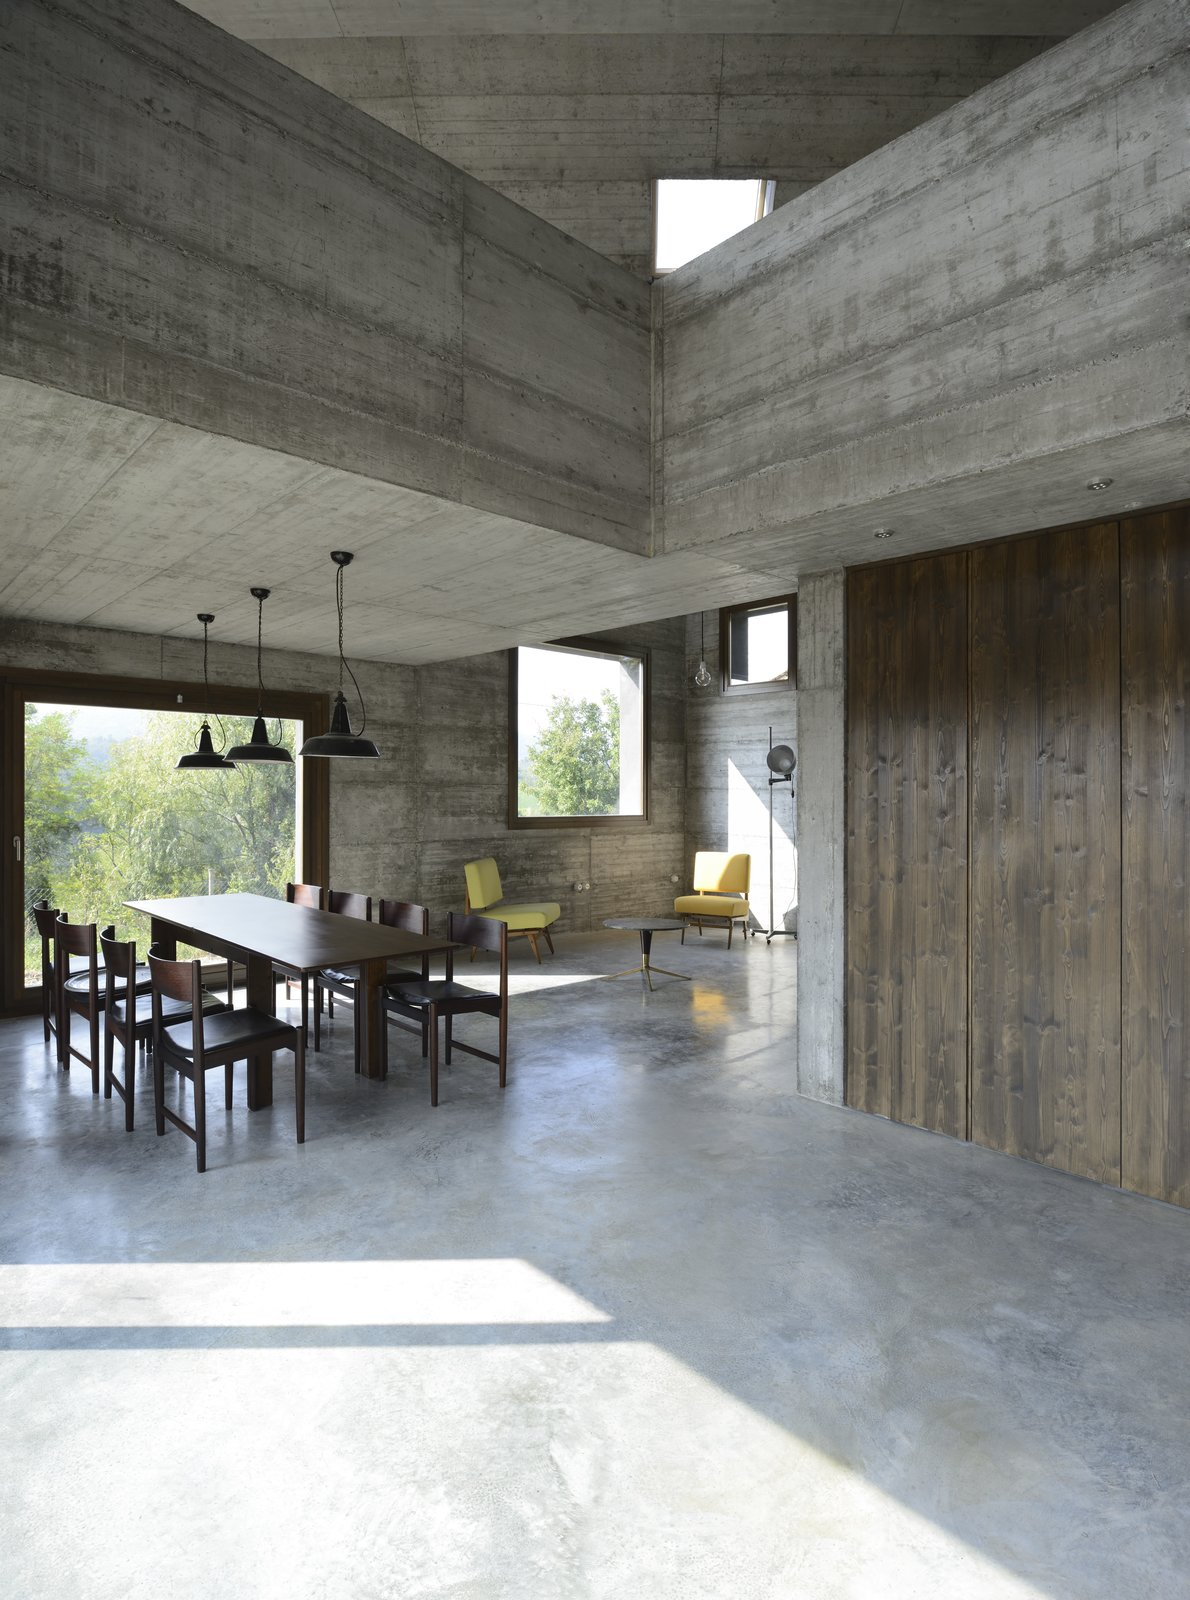 Living Room, Chair, Coffee Tables, Pendant Lighting, and Concrete Floor  Photos from A Concrete Hideaway in the Italian Countryside